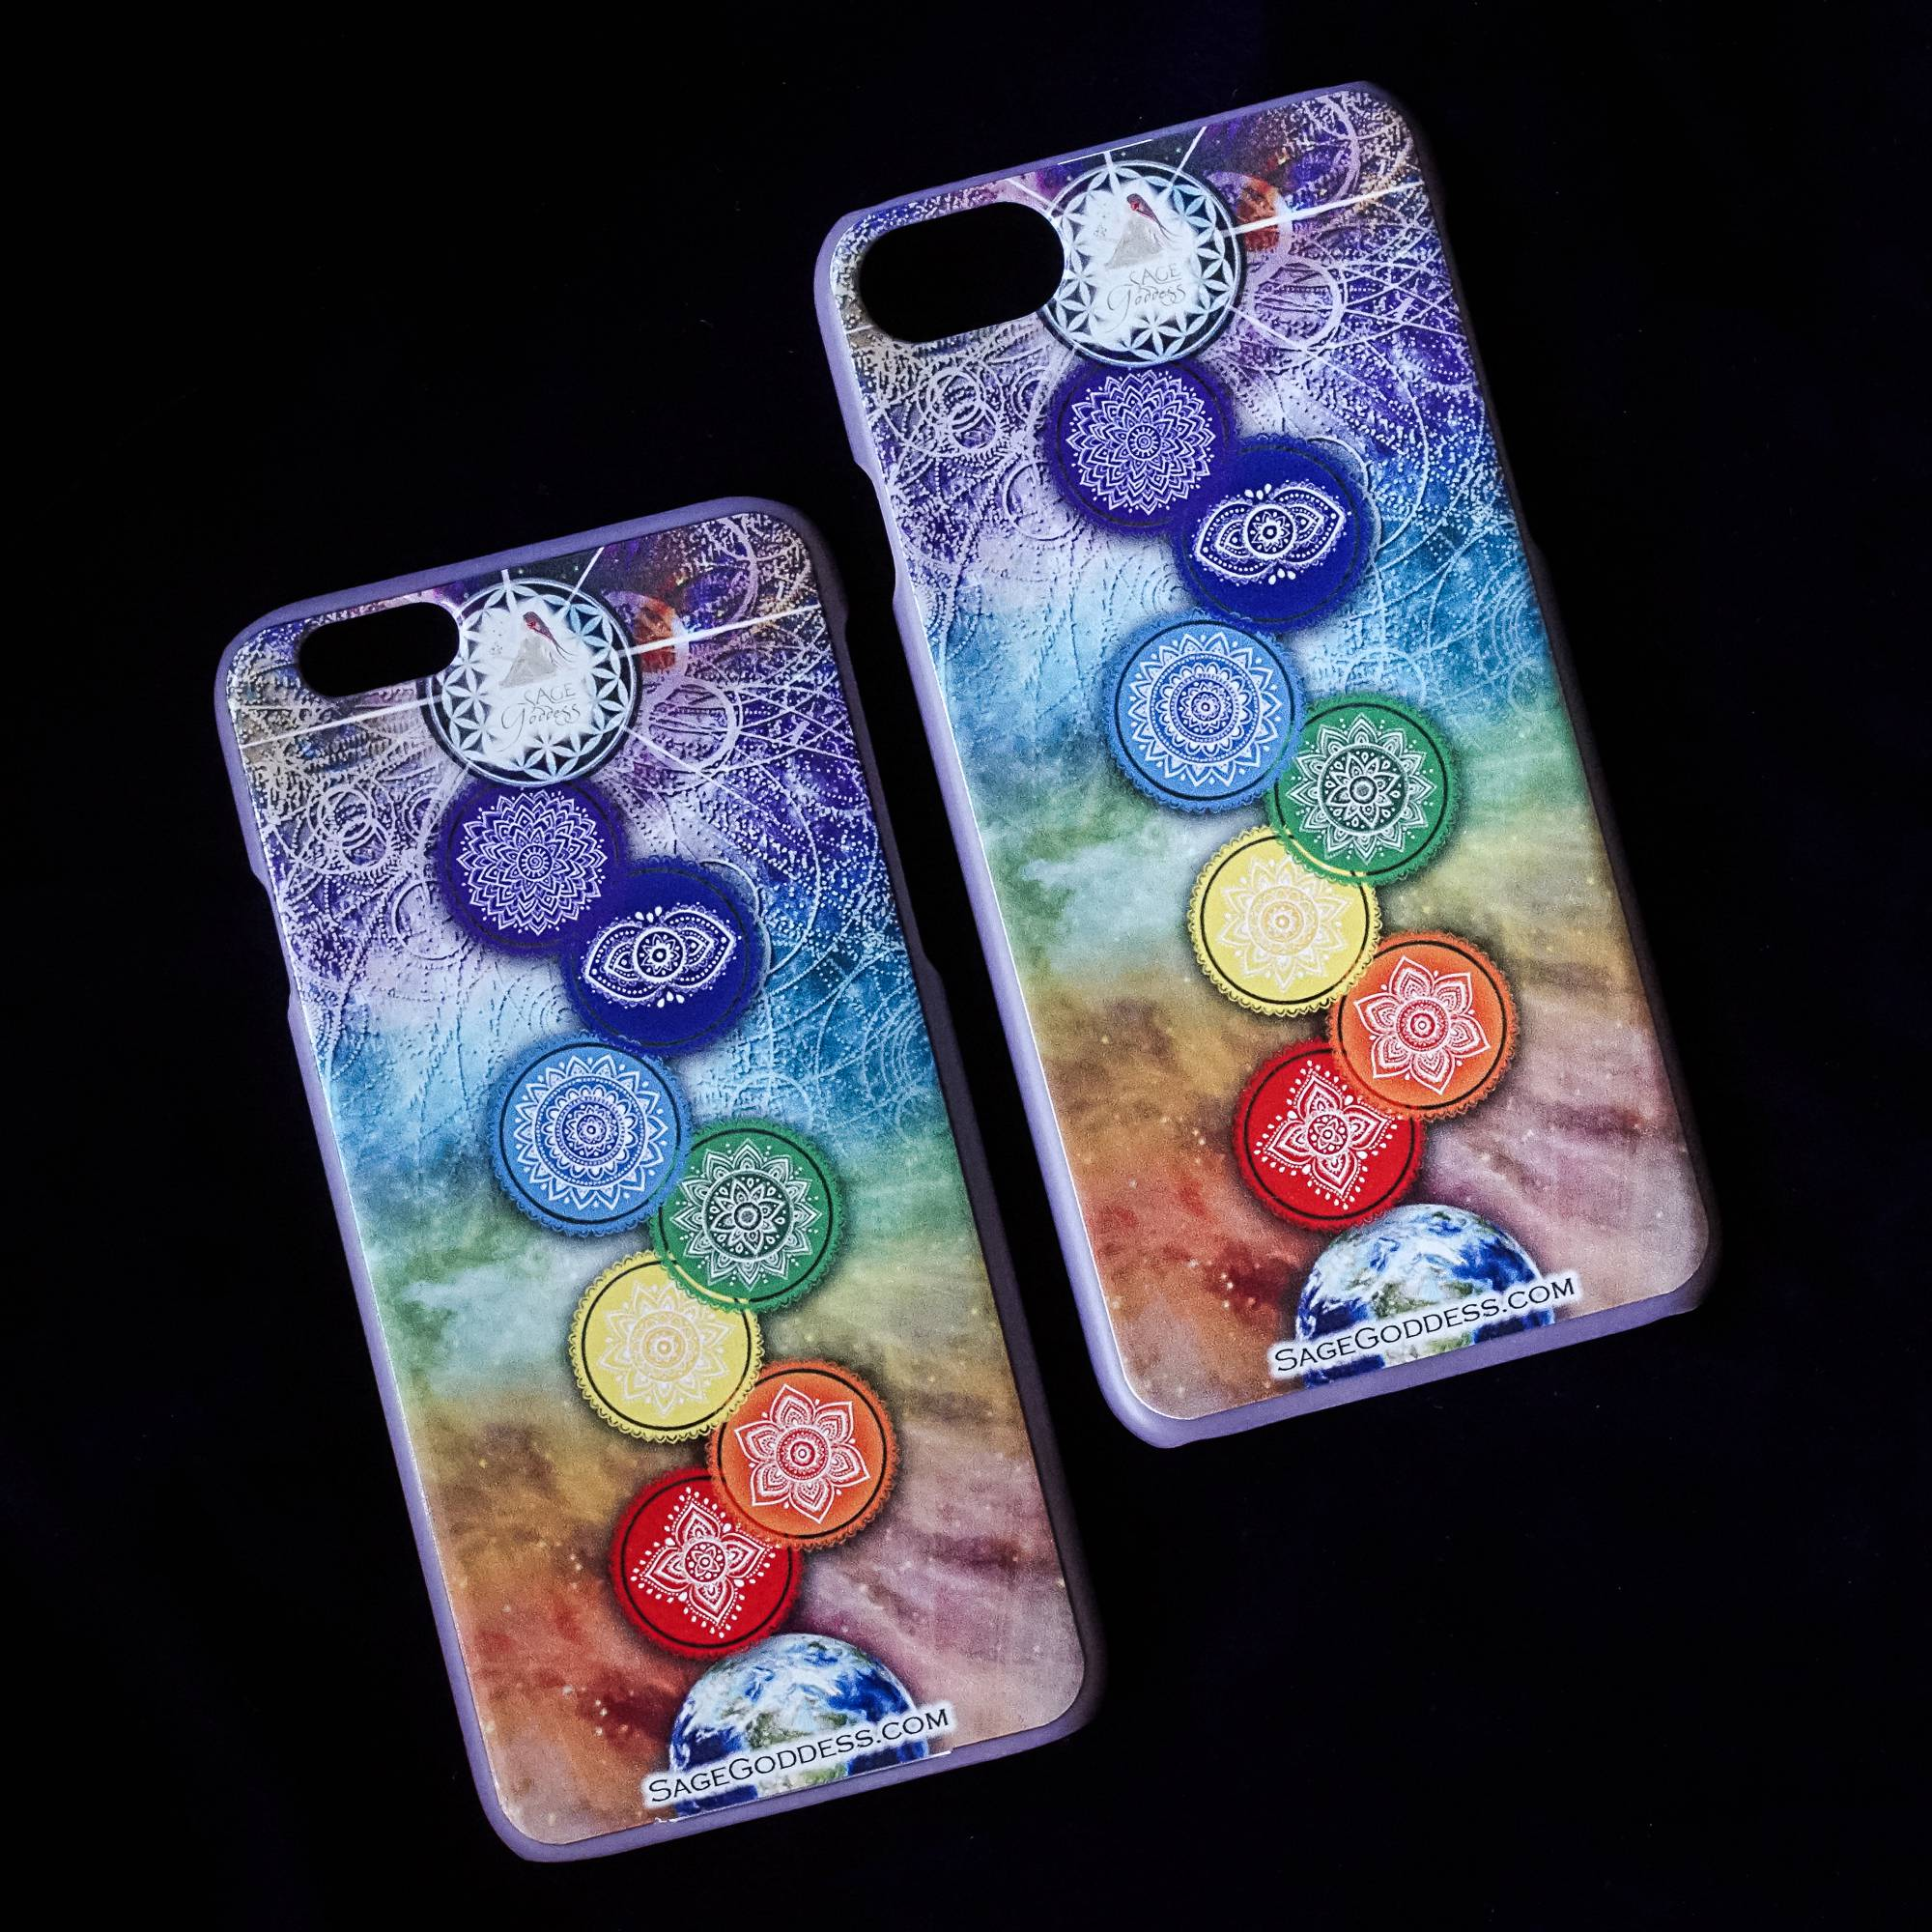 SG Cell Phone Cases to magically protect your iPhone 586f2babbb50